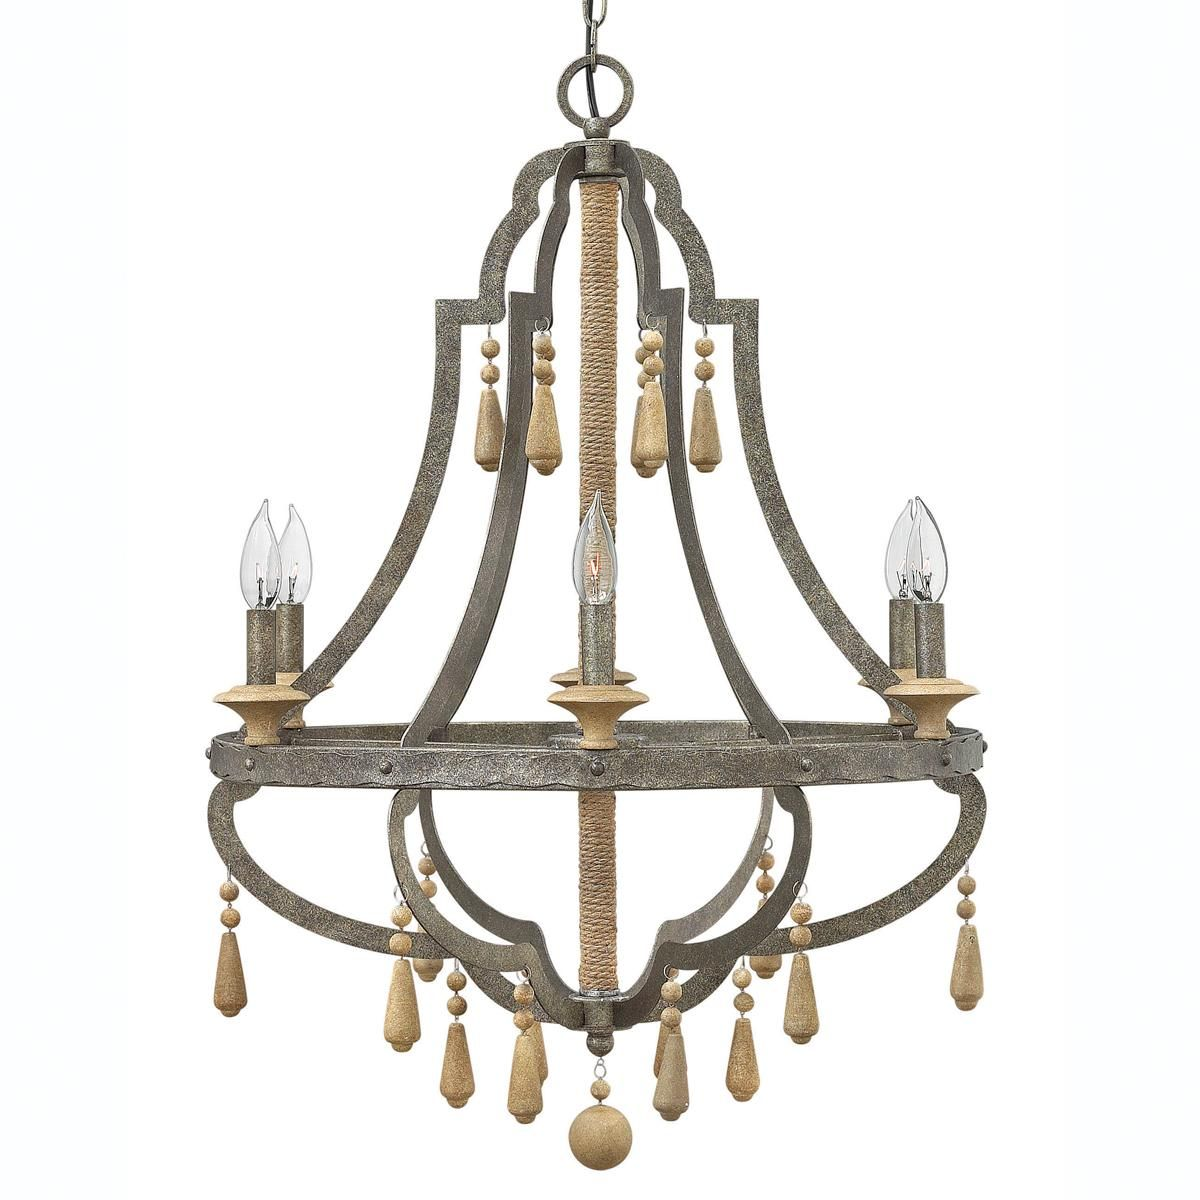 Bohemian inspired chandelier small chandeliers bohemian and chandelier shades cordoba lighting ideas table lighting remodeling ideas bathroom ideas irons pego lamps decorative lighting mozeypictures Image collections